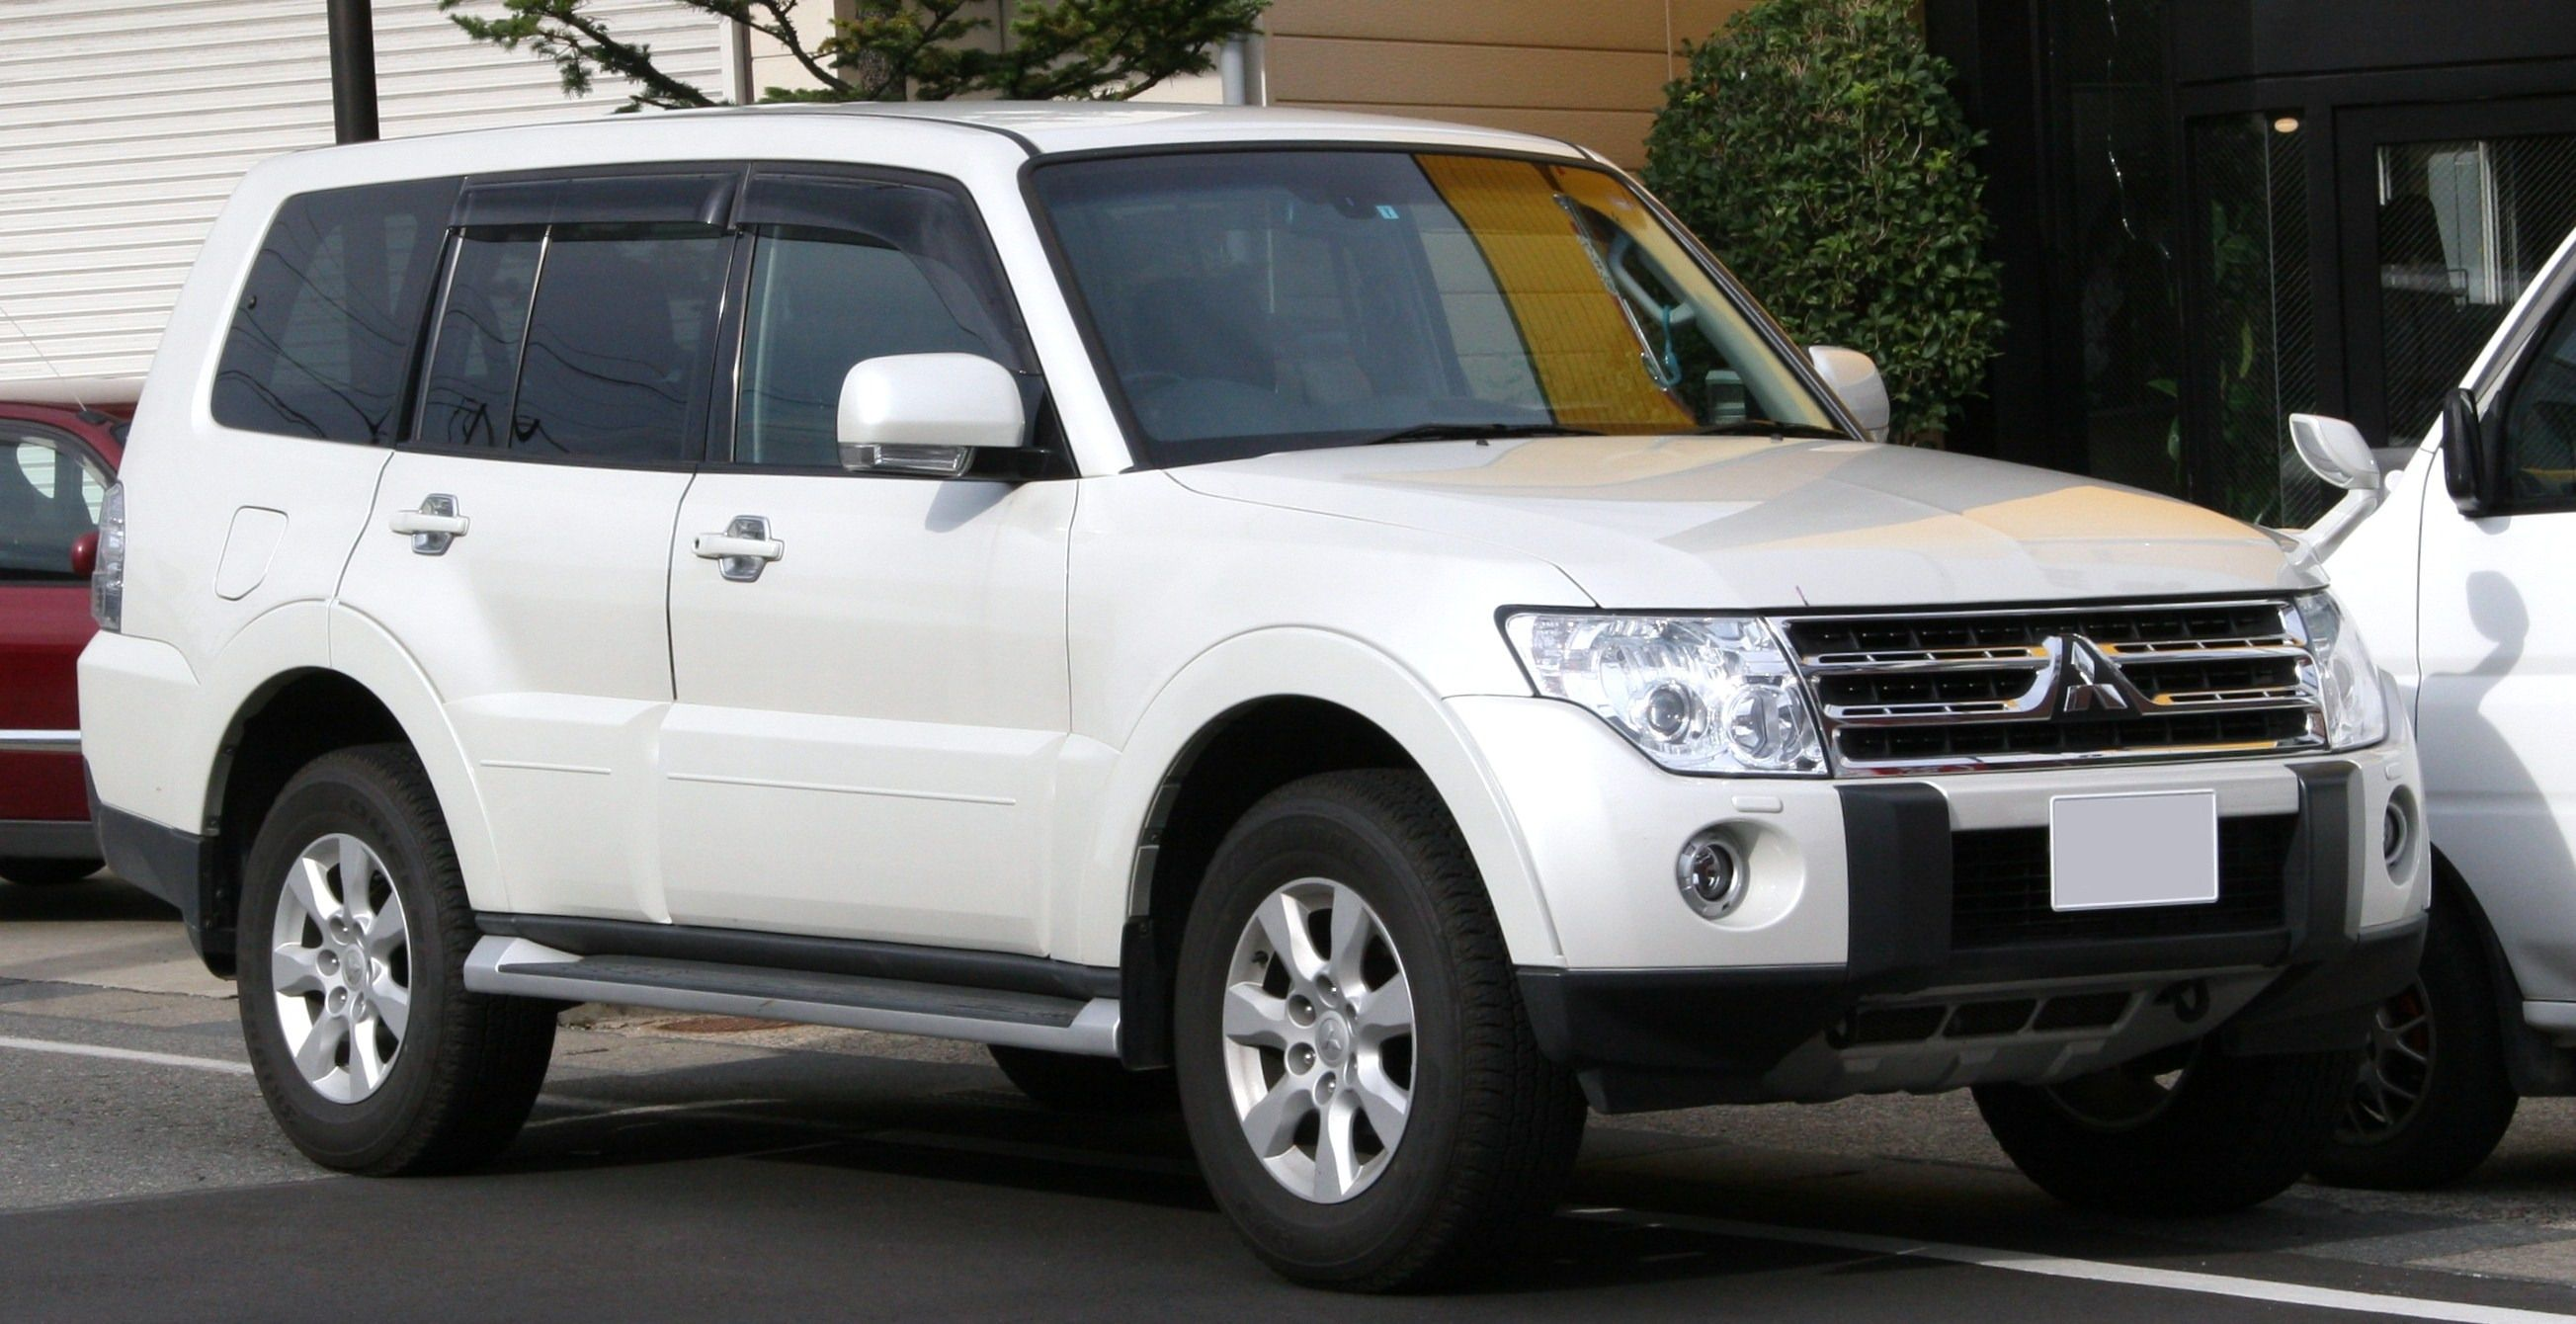 Mitsubishi Pajero 2018 Check More At Http Www New Cars Club 2018 03 19 Mitsubishi Pajero 2018